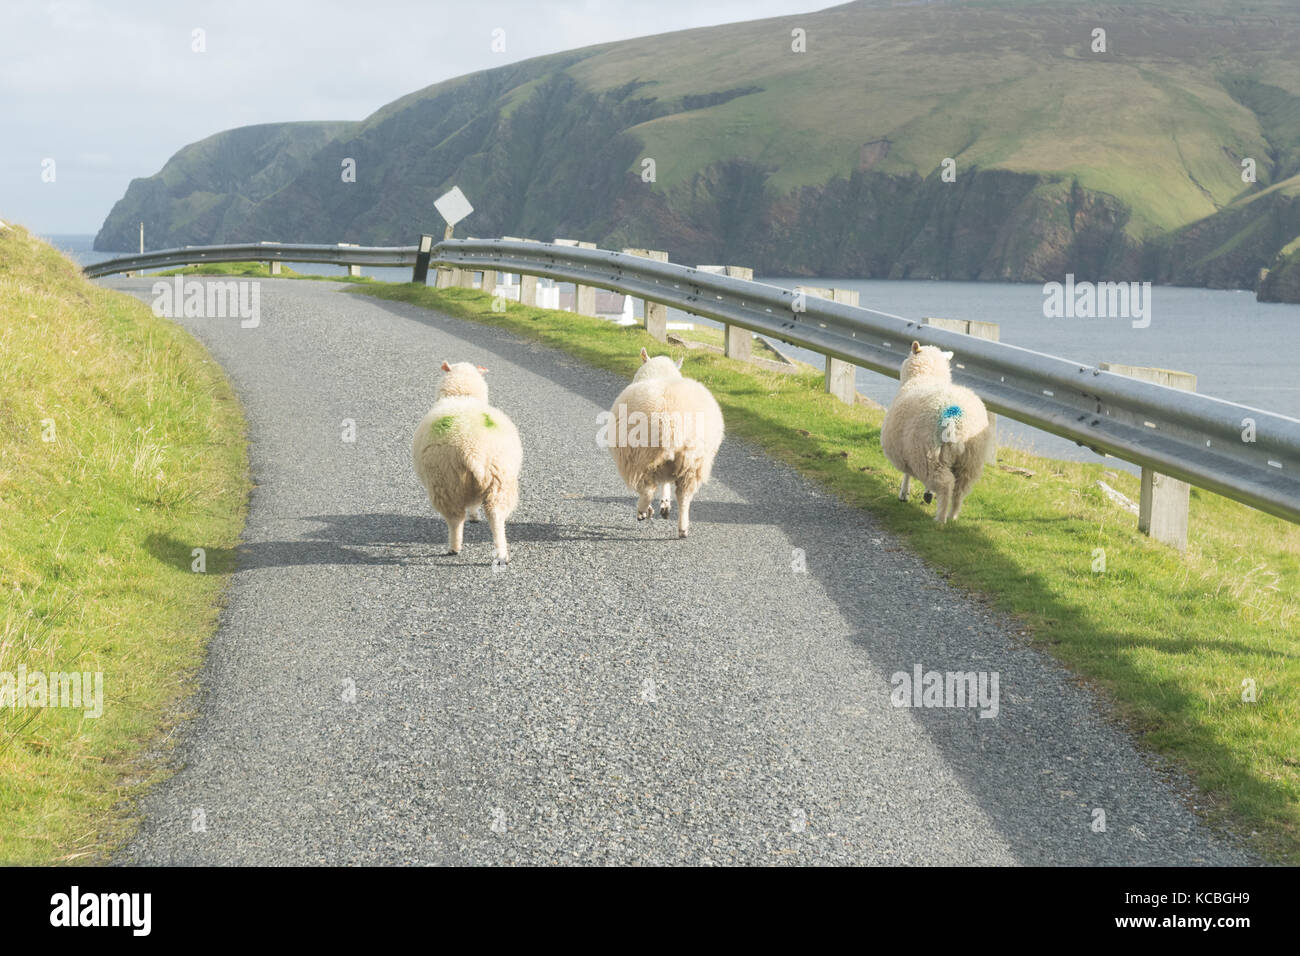 Three sheep running along road in Unst, Shetland Islands, Scotland, UK - Stock Image